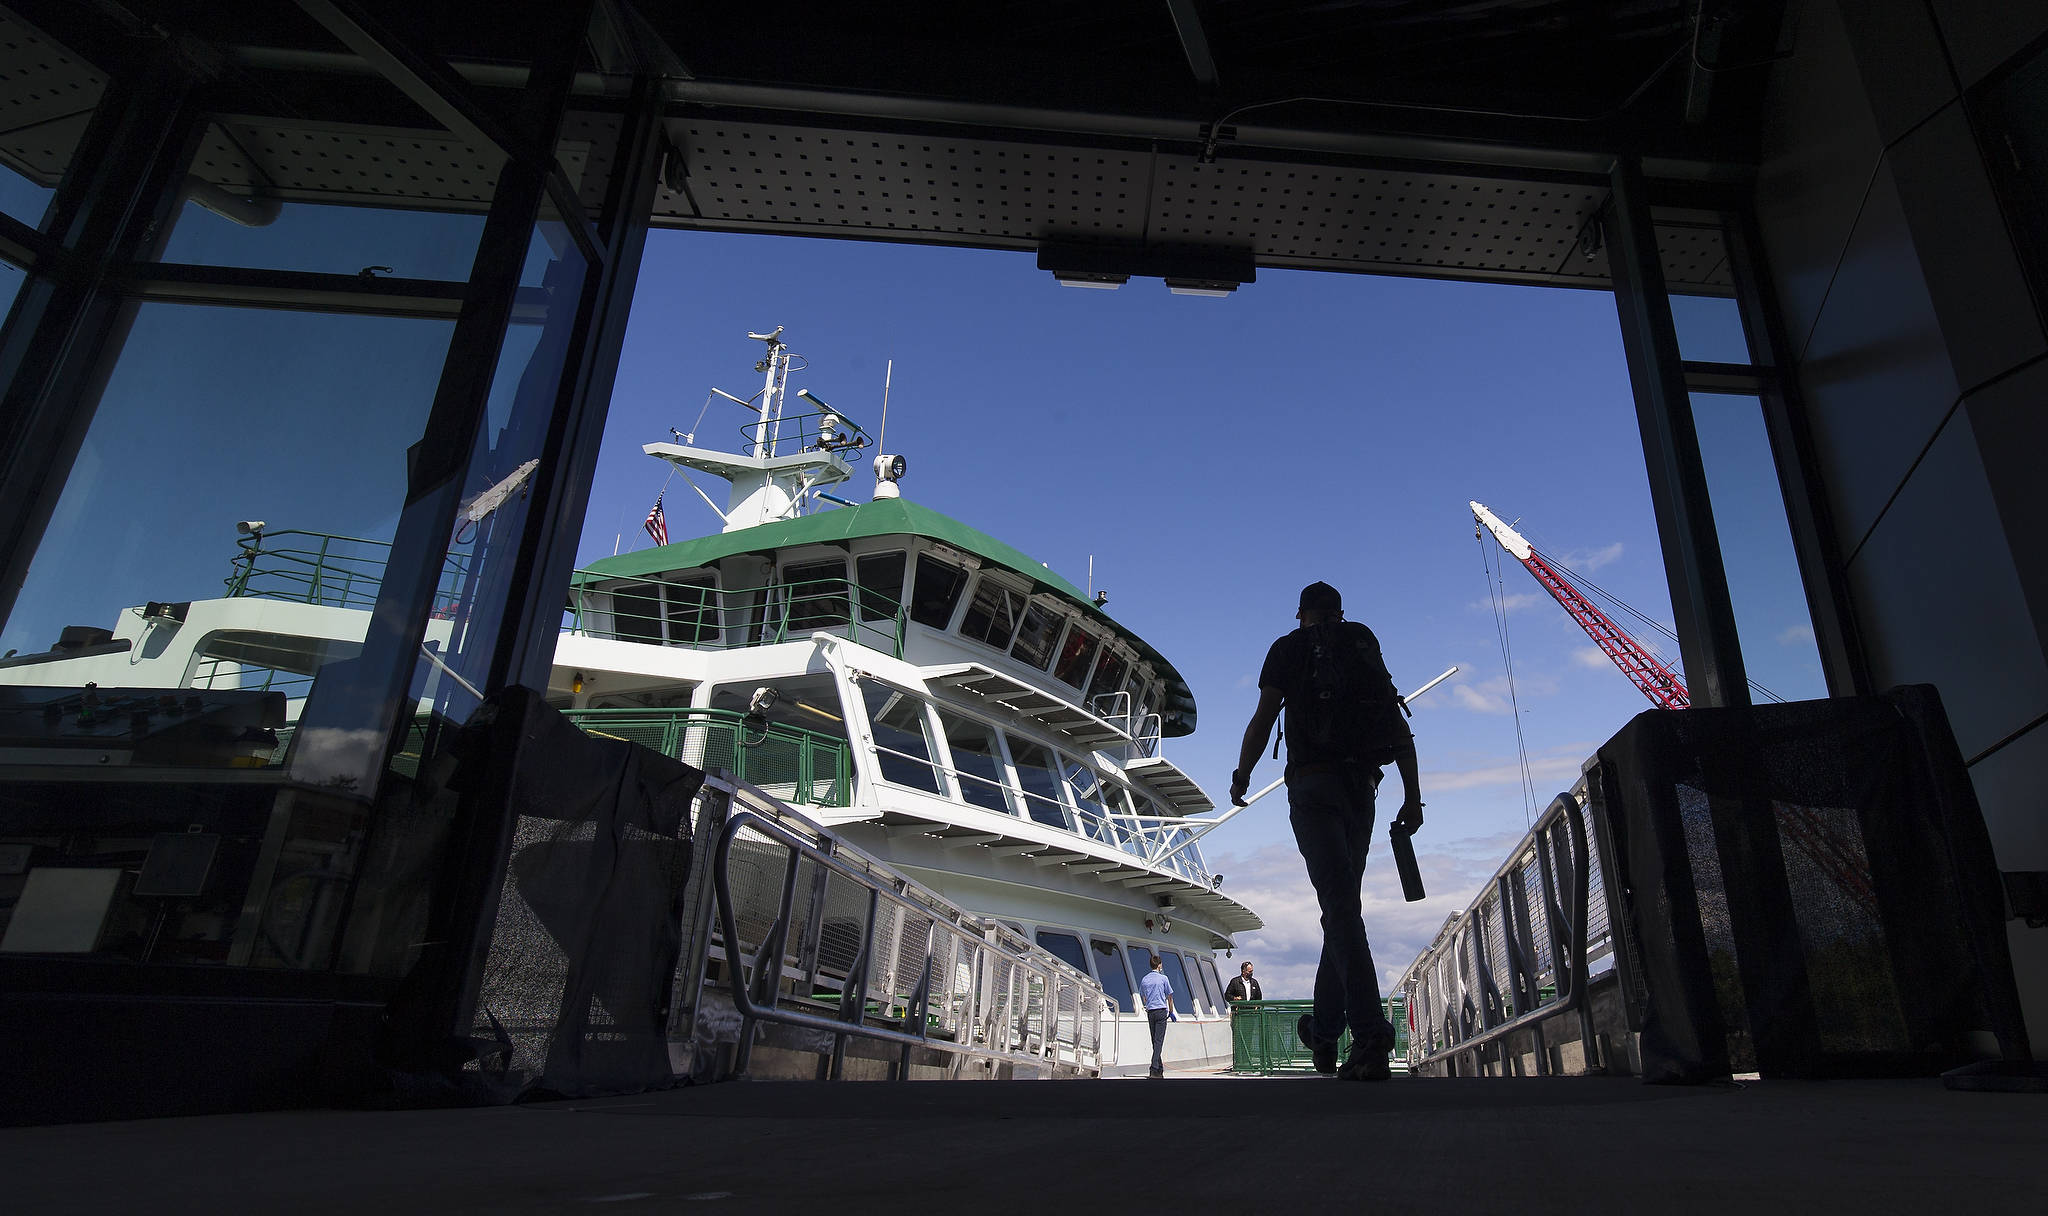 A passenger uses the overhead walkway to board a ferry at the Mukilteo terminal on Monday. It was the first day for the new service, as opposed to the previous method of boarding by way of the car deck ahead of loading cars. (Andy Bronson / The Herald)